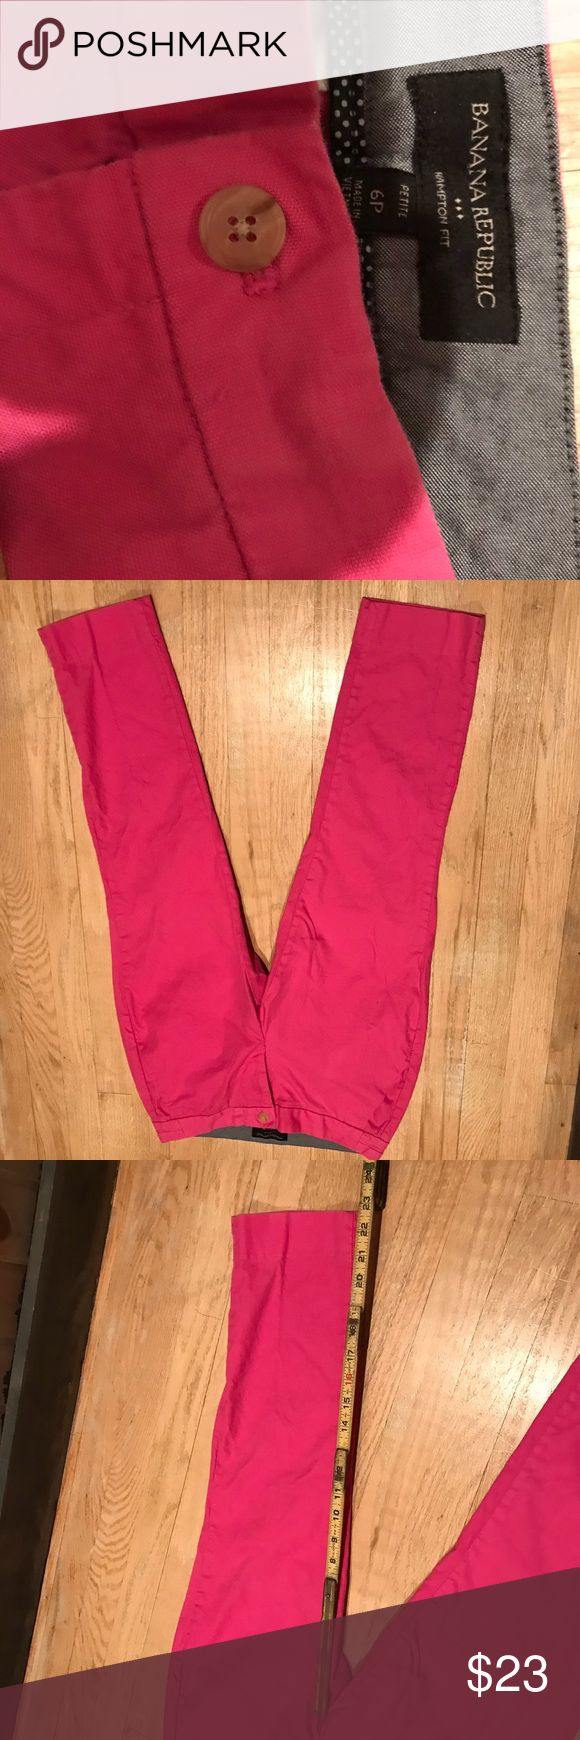 """Banana Republic Hot Pink Capri Pants Size 6P Very gently used Banana Republic Pink Capri pants Size 6P. Only worn a few times. Measurements are approximate  Inseam 23"""" Leg opening 6"""" Waist 14.75""""  Please feel free to ask questions and make an offer! Banana Republic Pants Capris"""